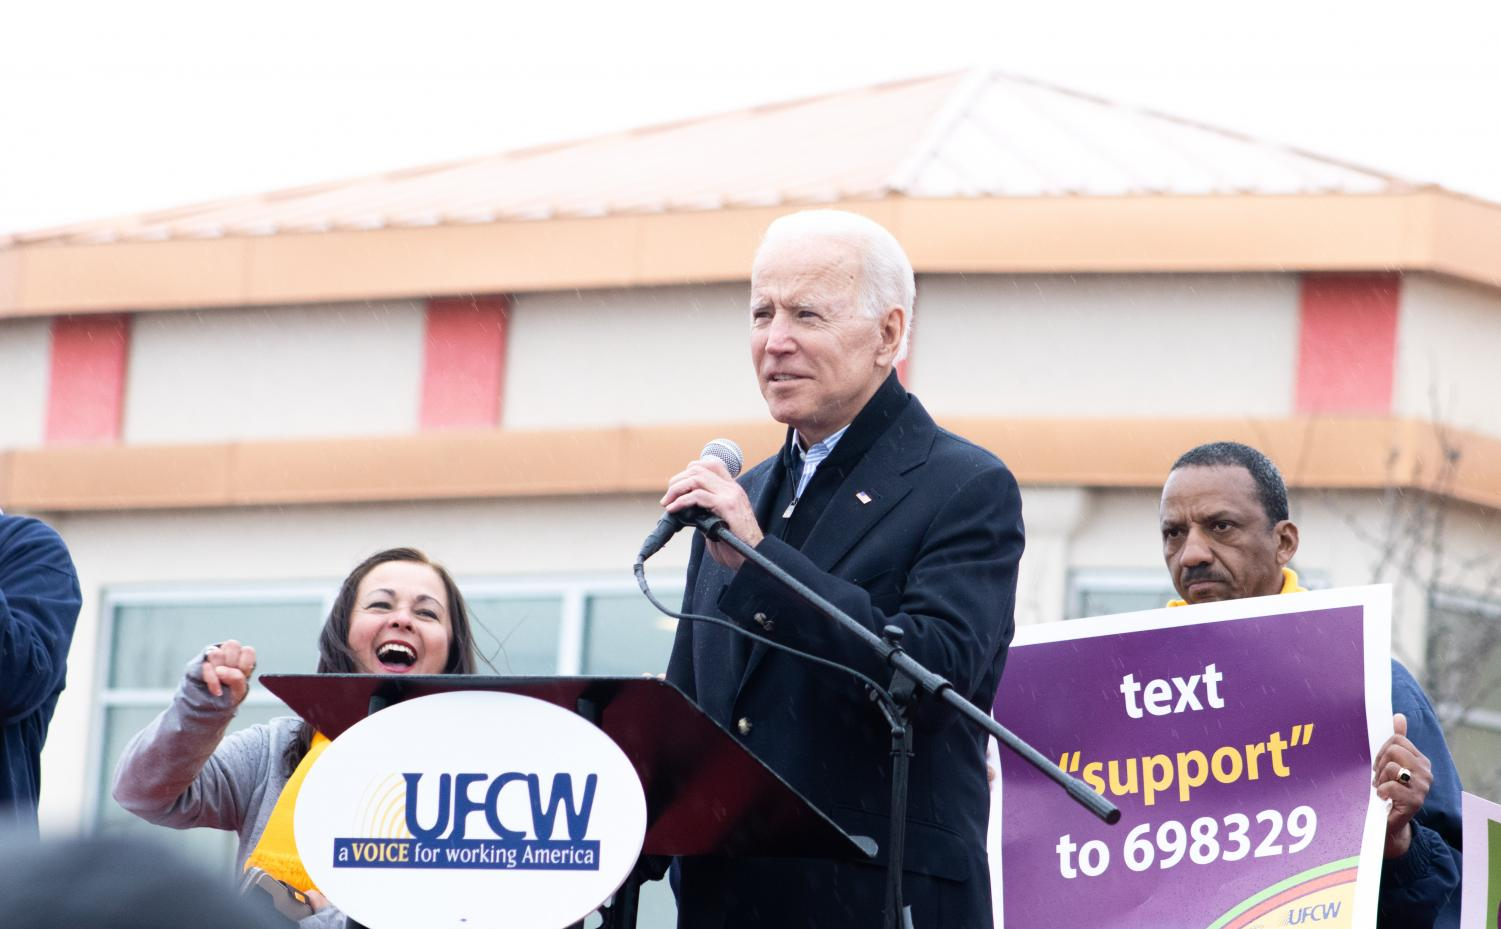 Former+Vice+President+Joe+Biden%2C+joined+by+regional+Stop+%26+Shop+employees%2C+addresses+a+group+of+strikers+in+Dorchester.